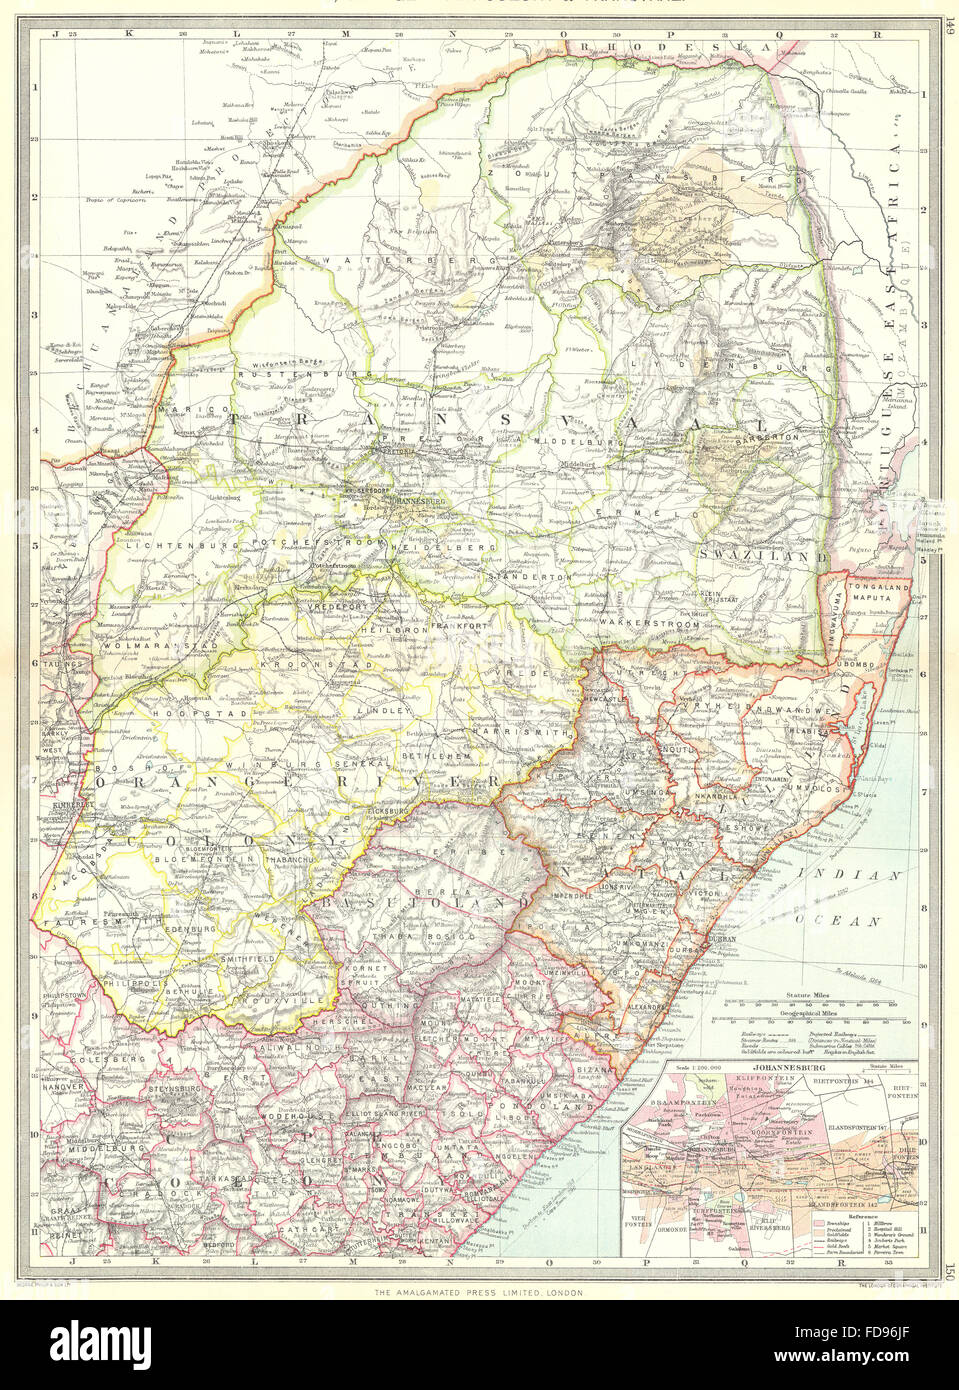 Natal South Africa Map.South Africa Natal Orange River Colony Transvaal Map Of Stock